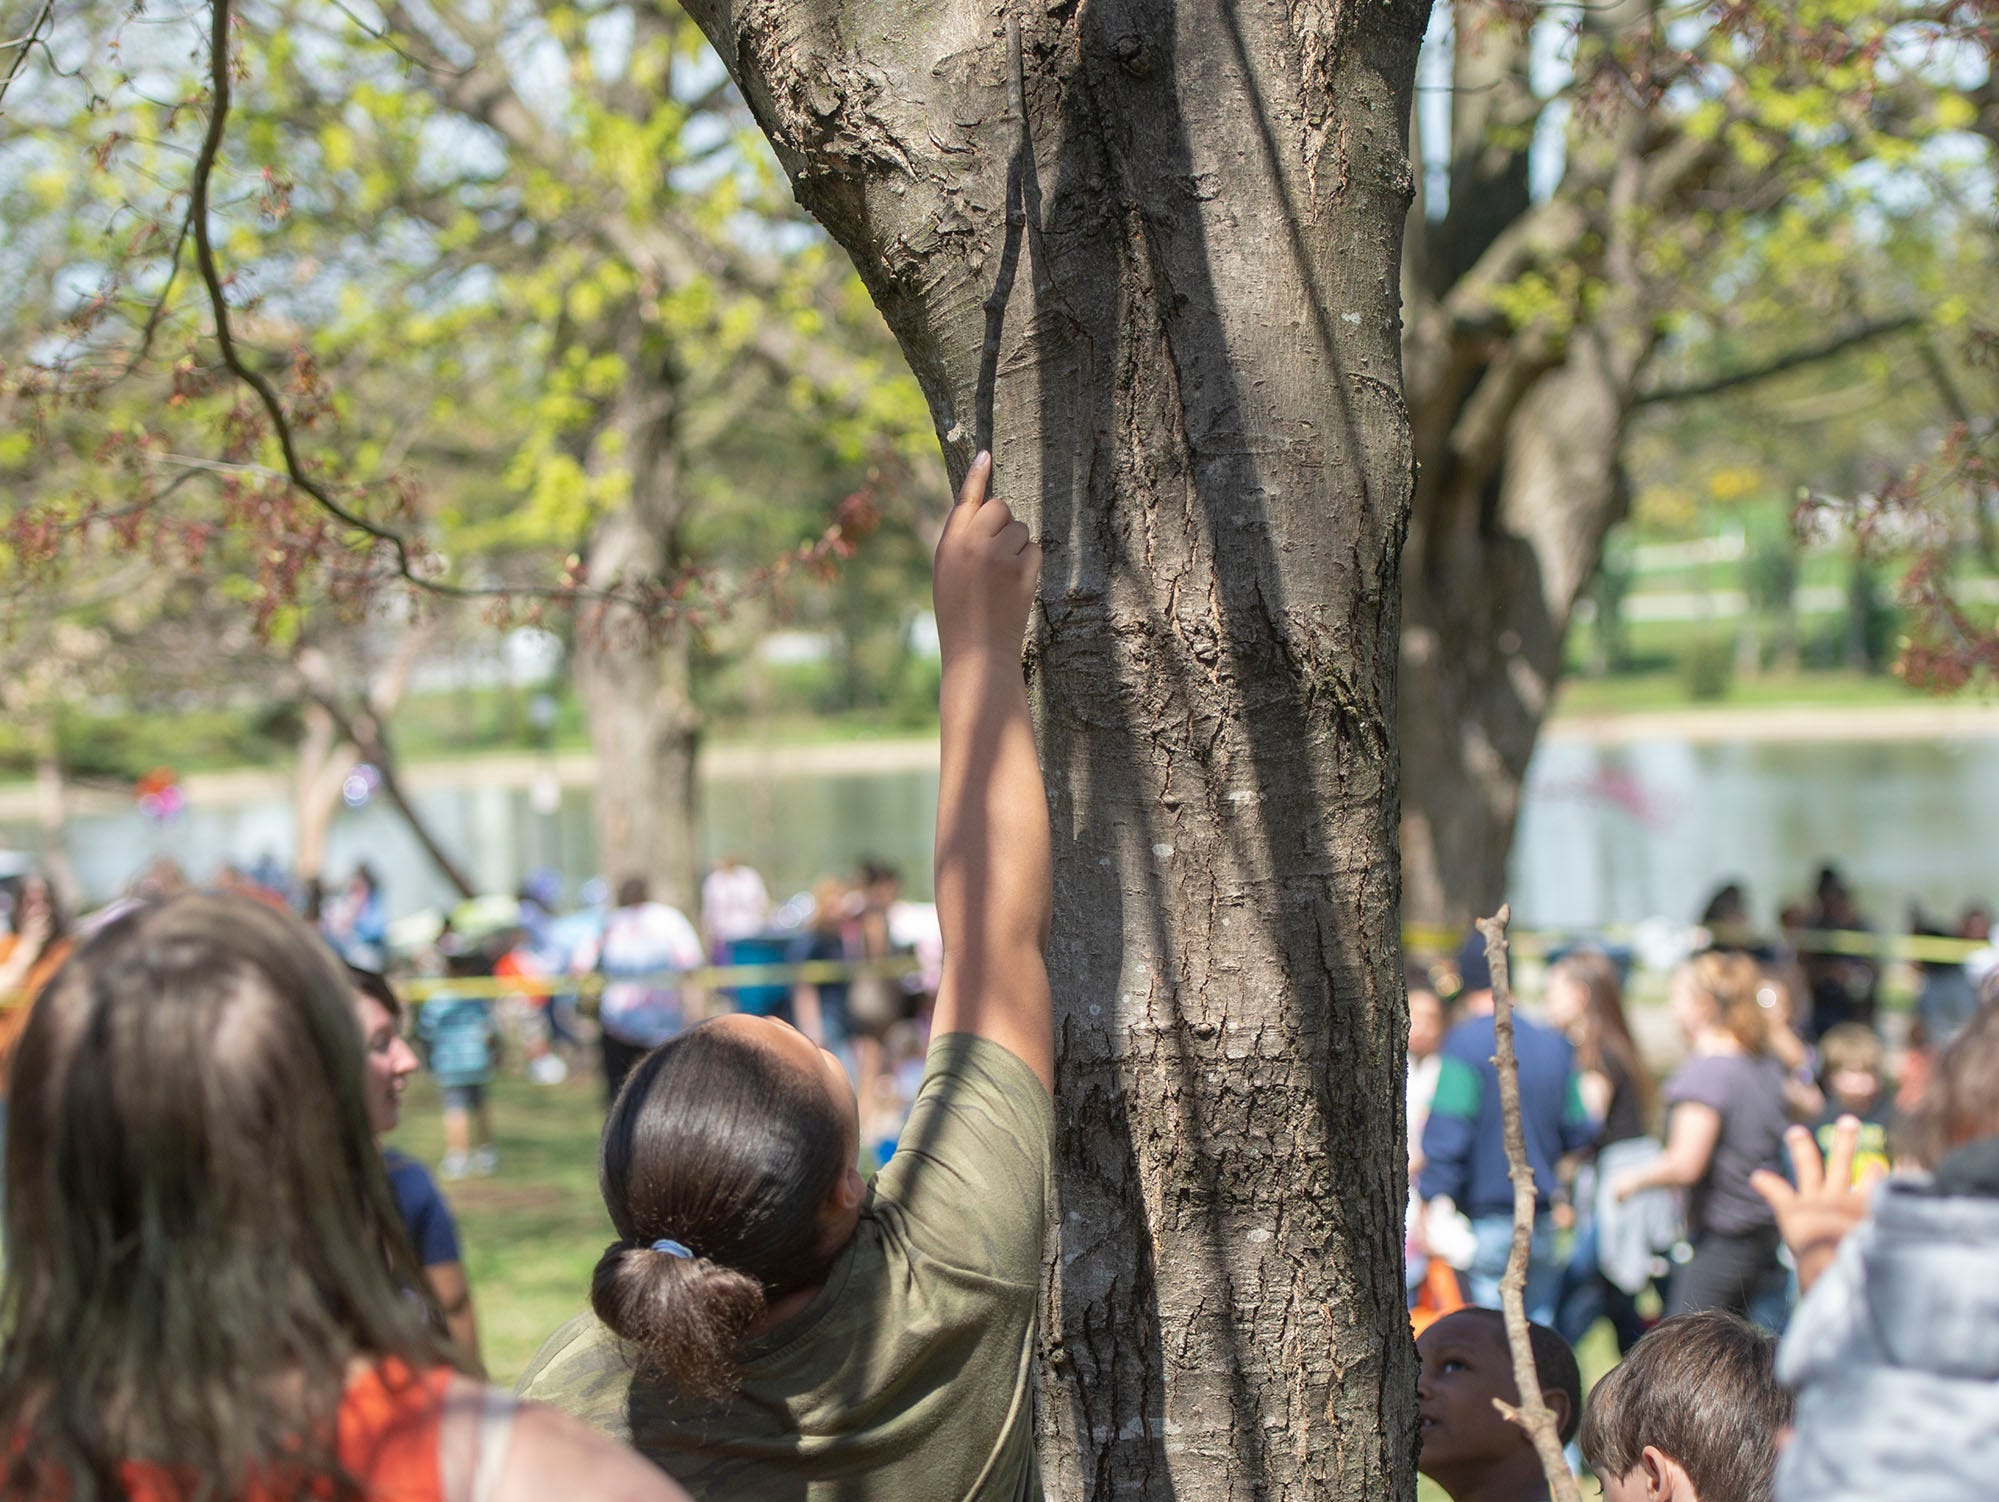 Some taller kids were called on to work on this egg in a tree at the City of York's Easter Egg Hunt at Kiwanis Lake on Saturday, April 13, 2019.